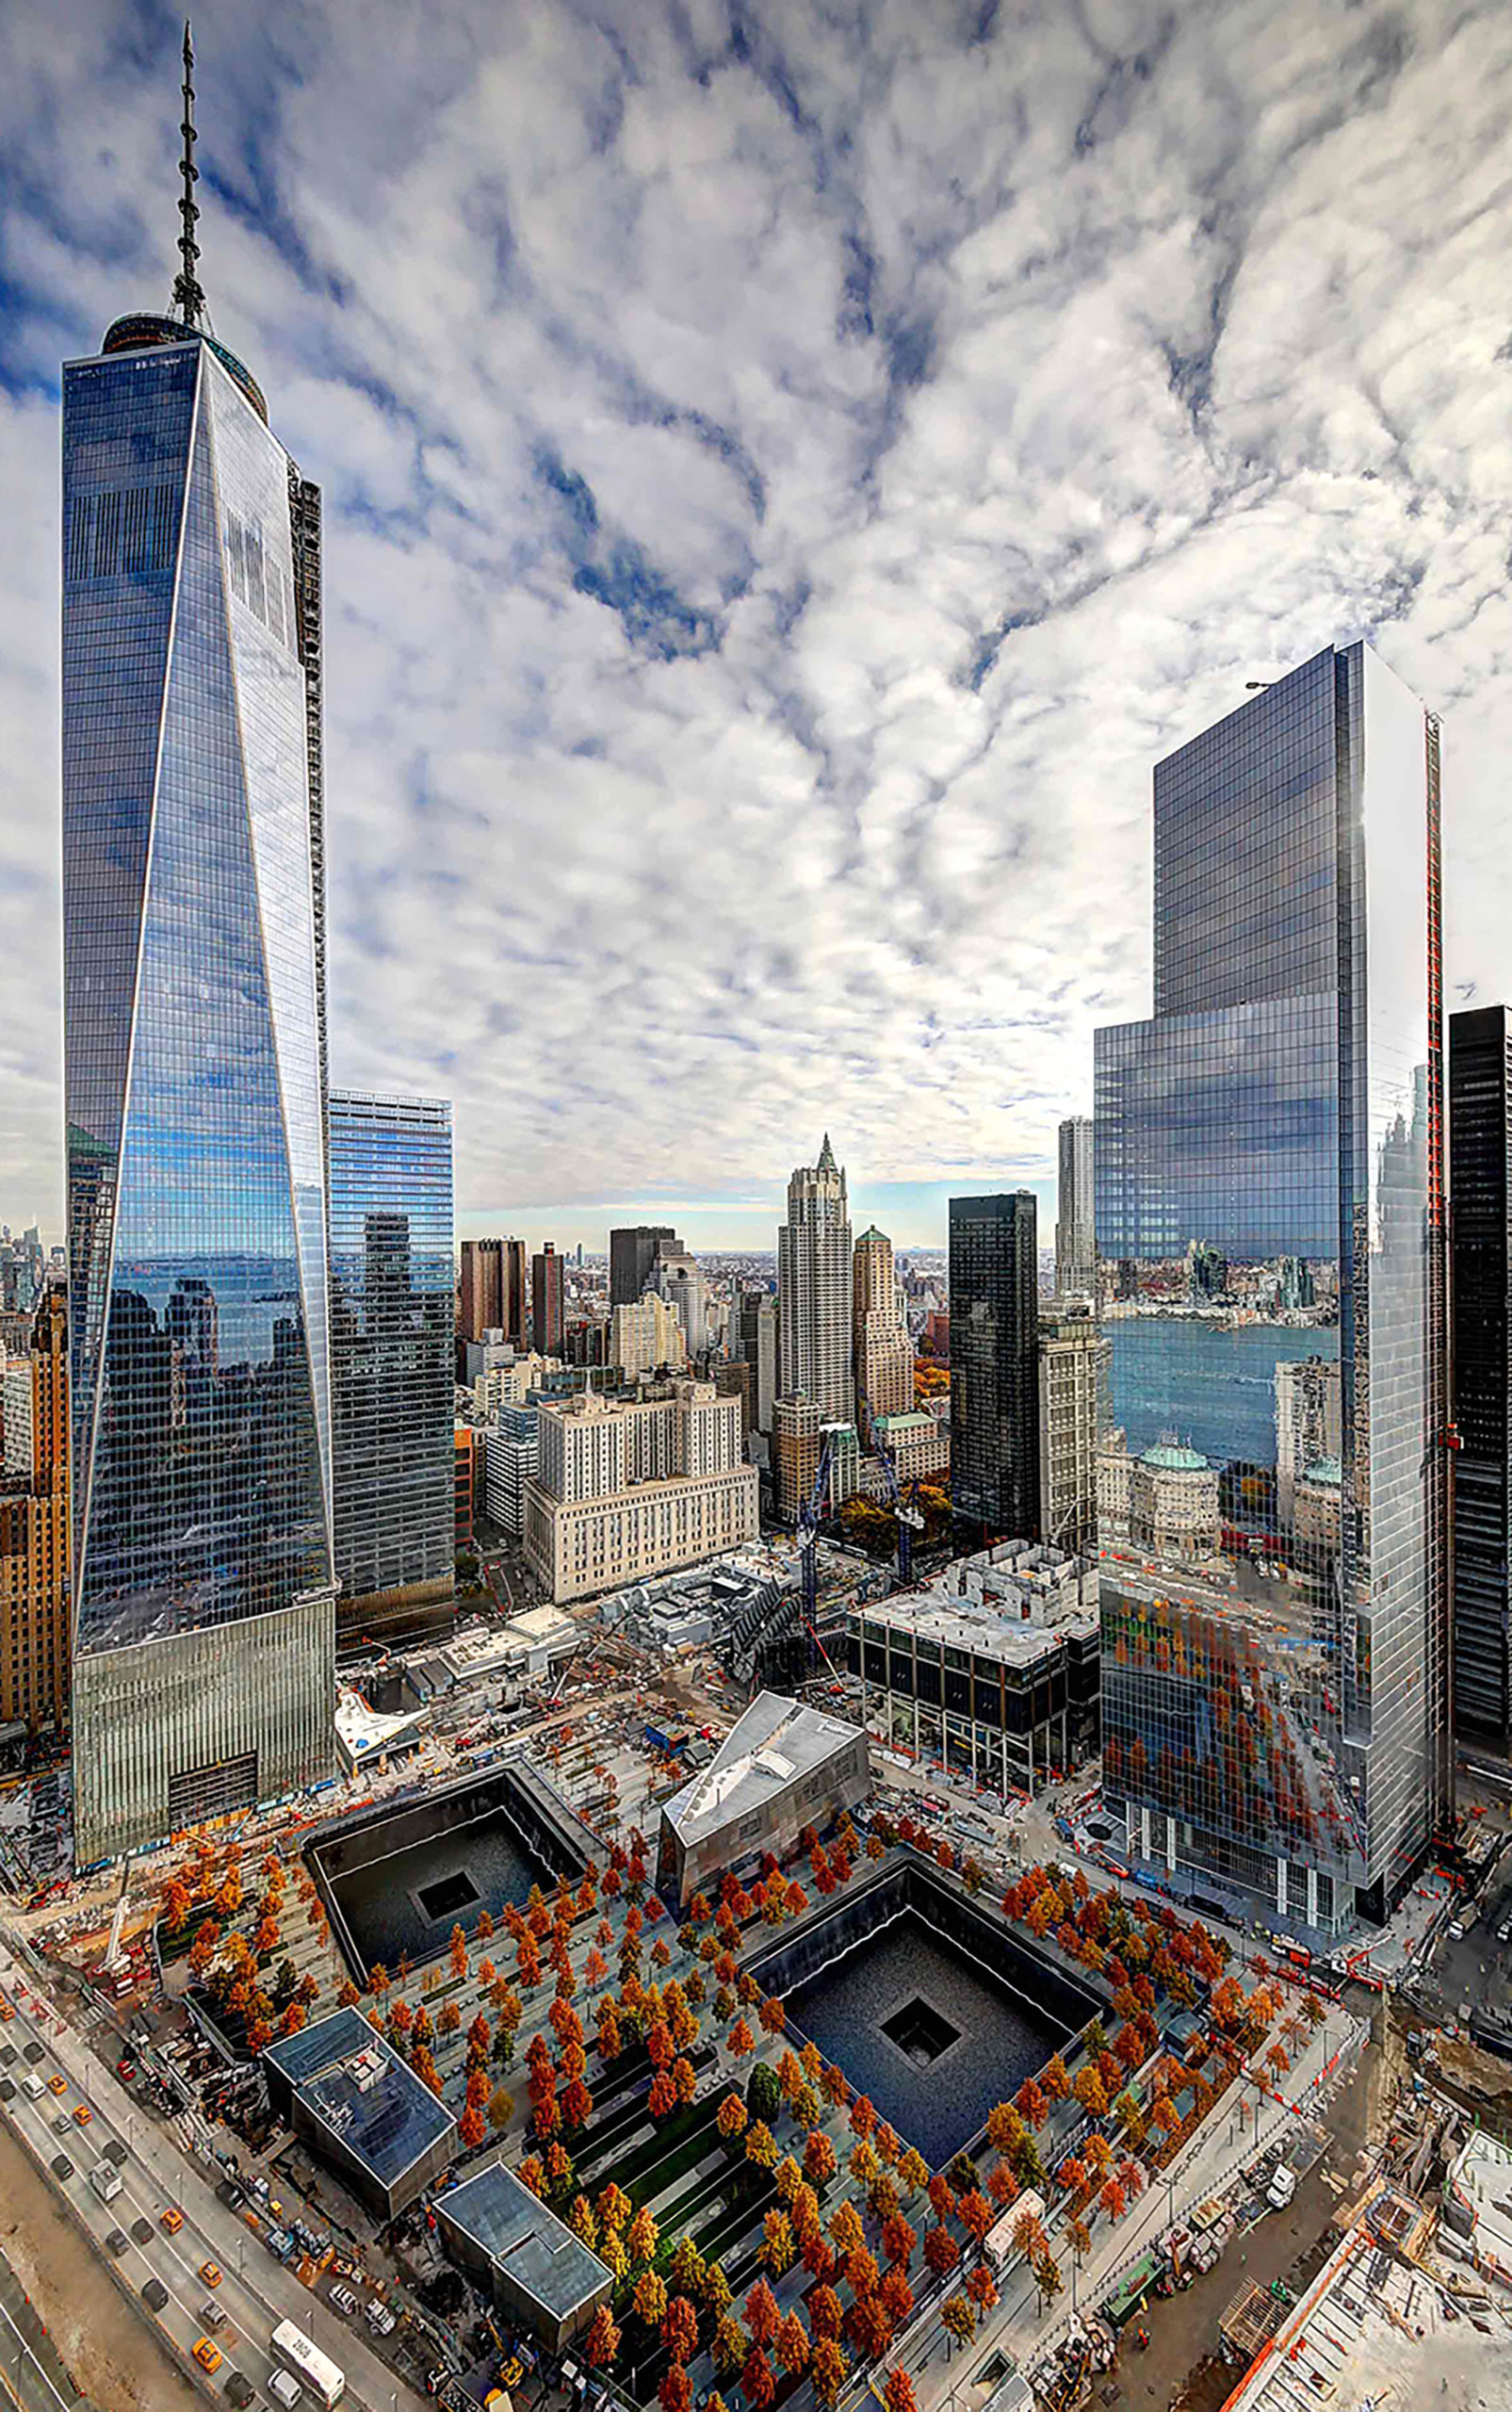 Structural Framing Realignment Press Release by MiTek - Freedom Tower and Tower Four in New York City with Benson Curtain Wall